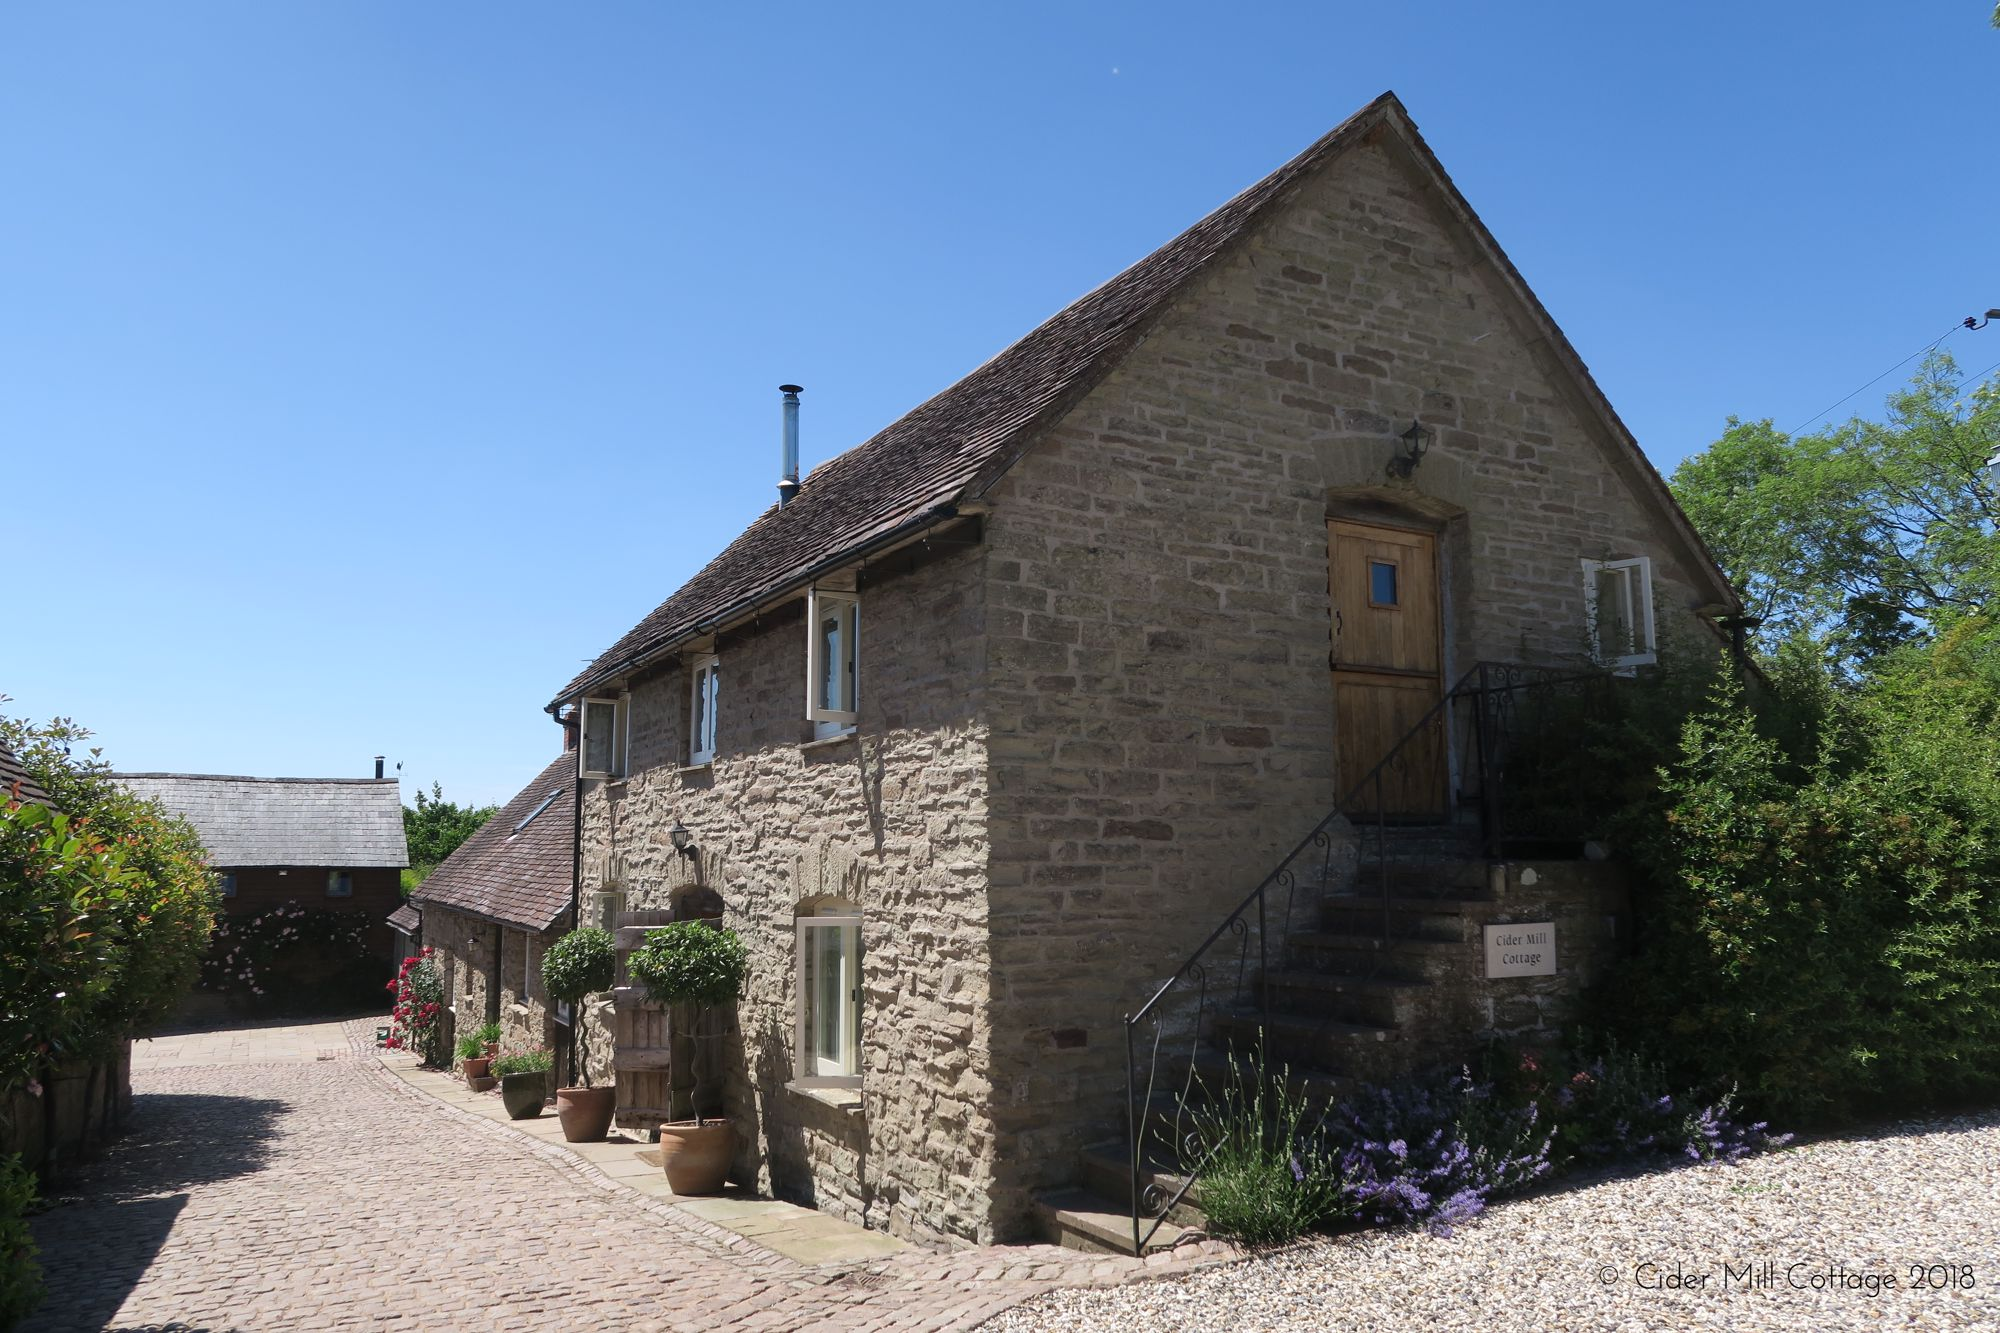 Self-Catering in Worcestershire holidays at Cool Places